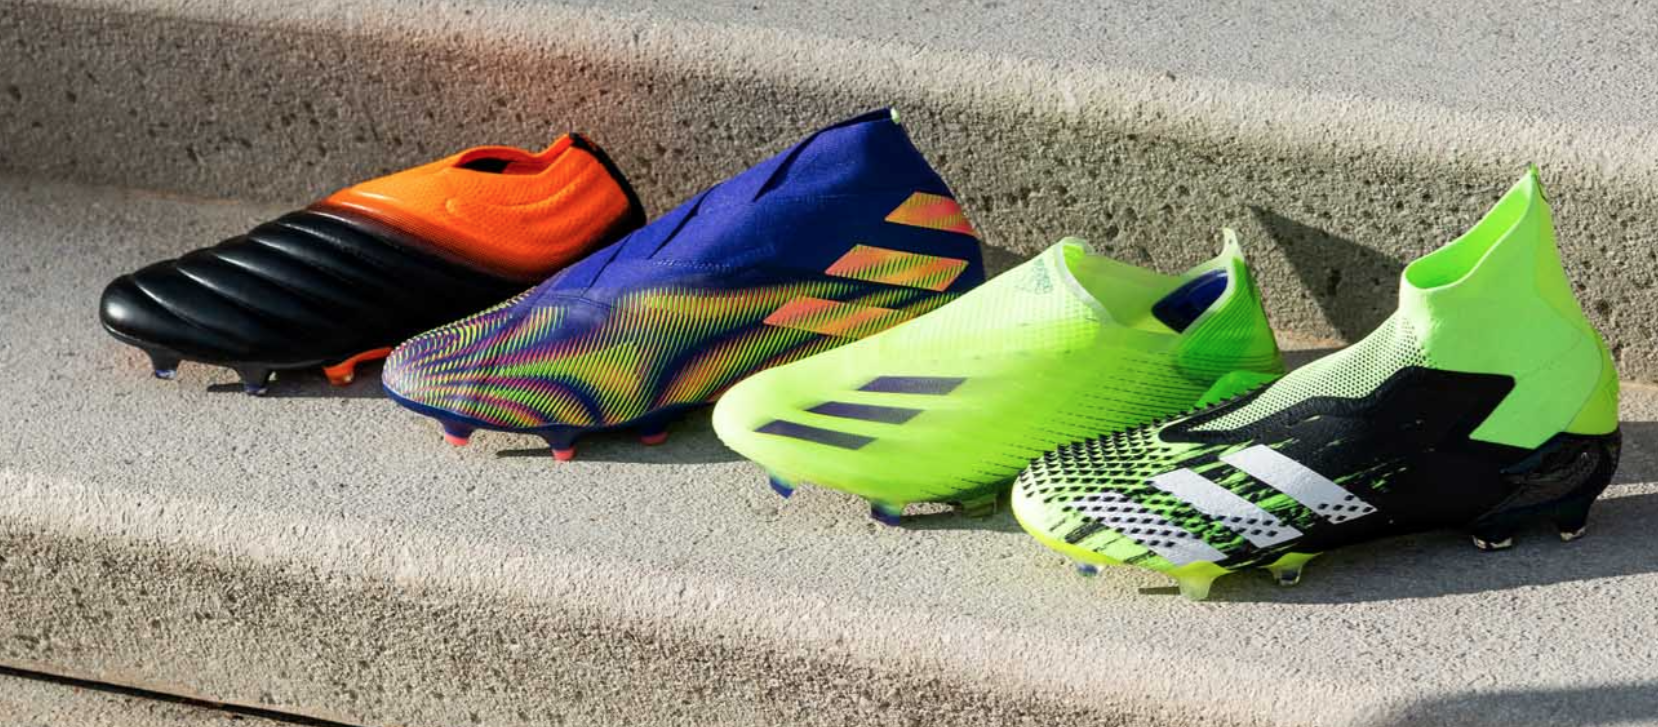 adidas Launch 'Precision to Blur' Pack